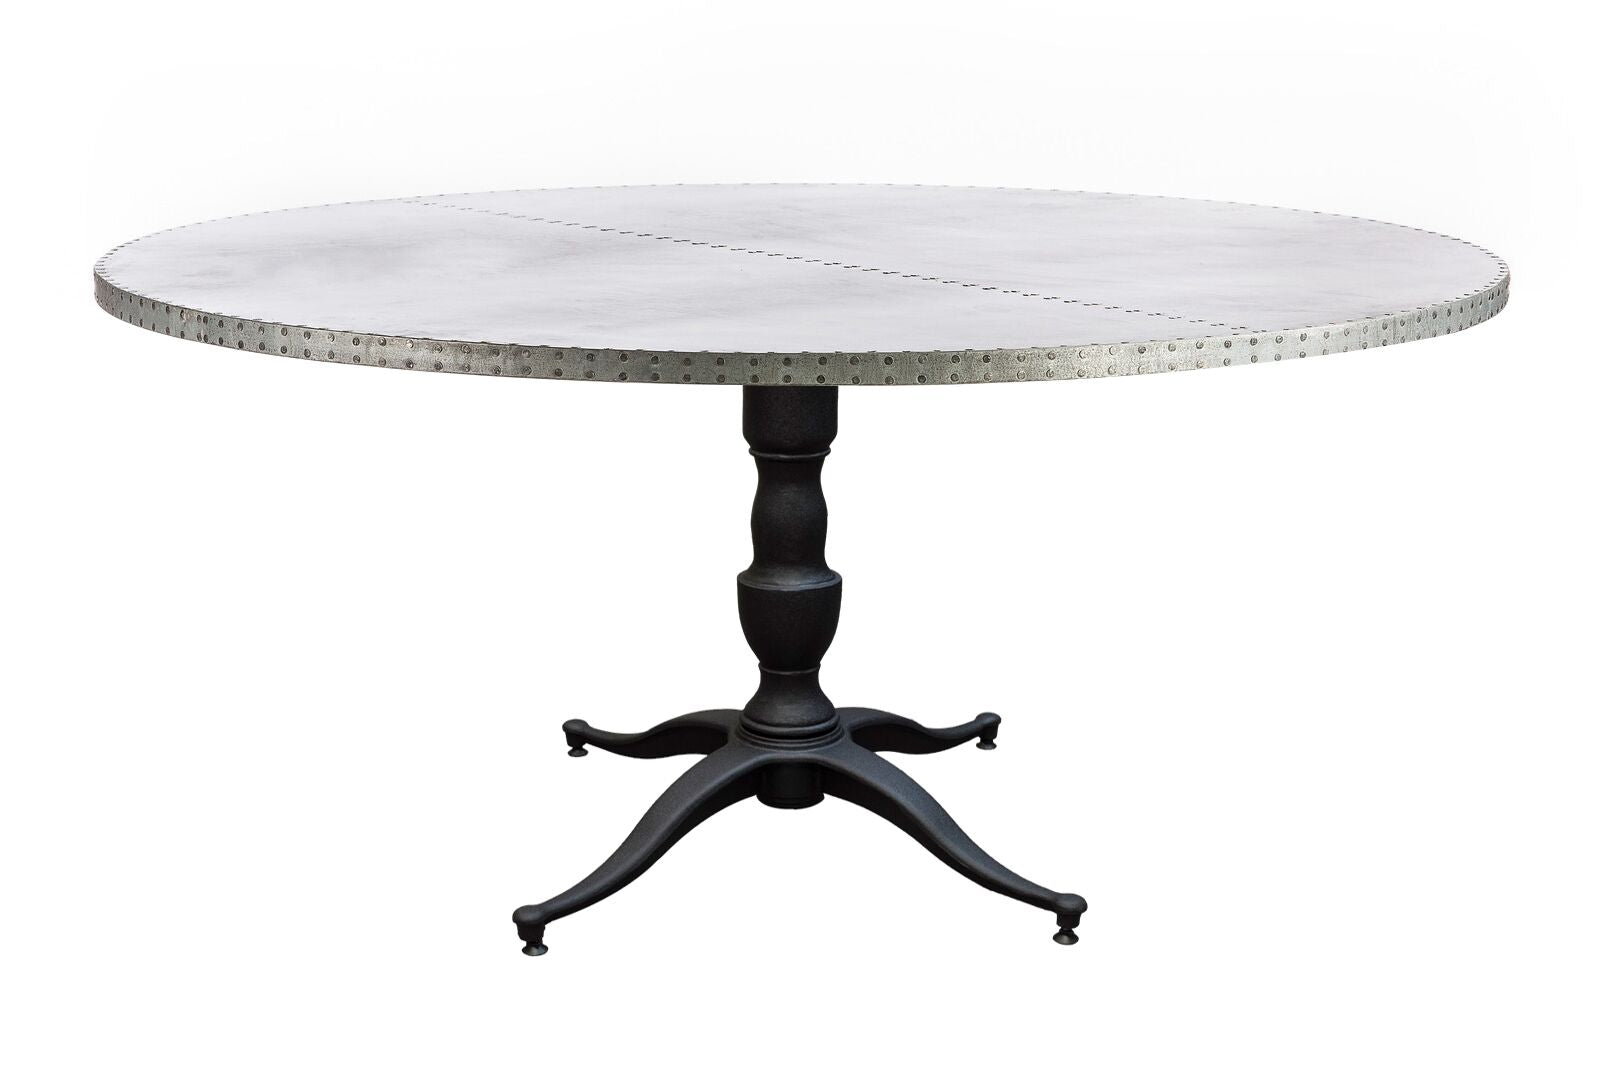 "Zinc Round Tables | Francesca Table | CLASSIC | Black | CUSTOM SIZE D 54 H 29 | 1.5"" Standard 